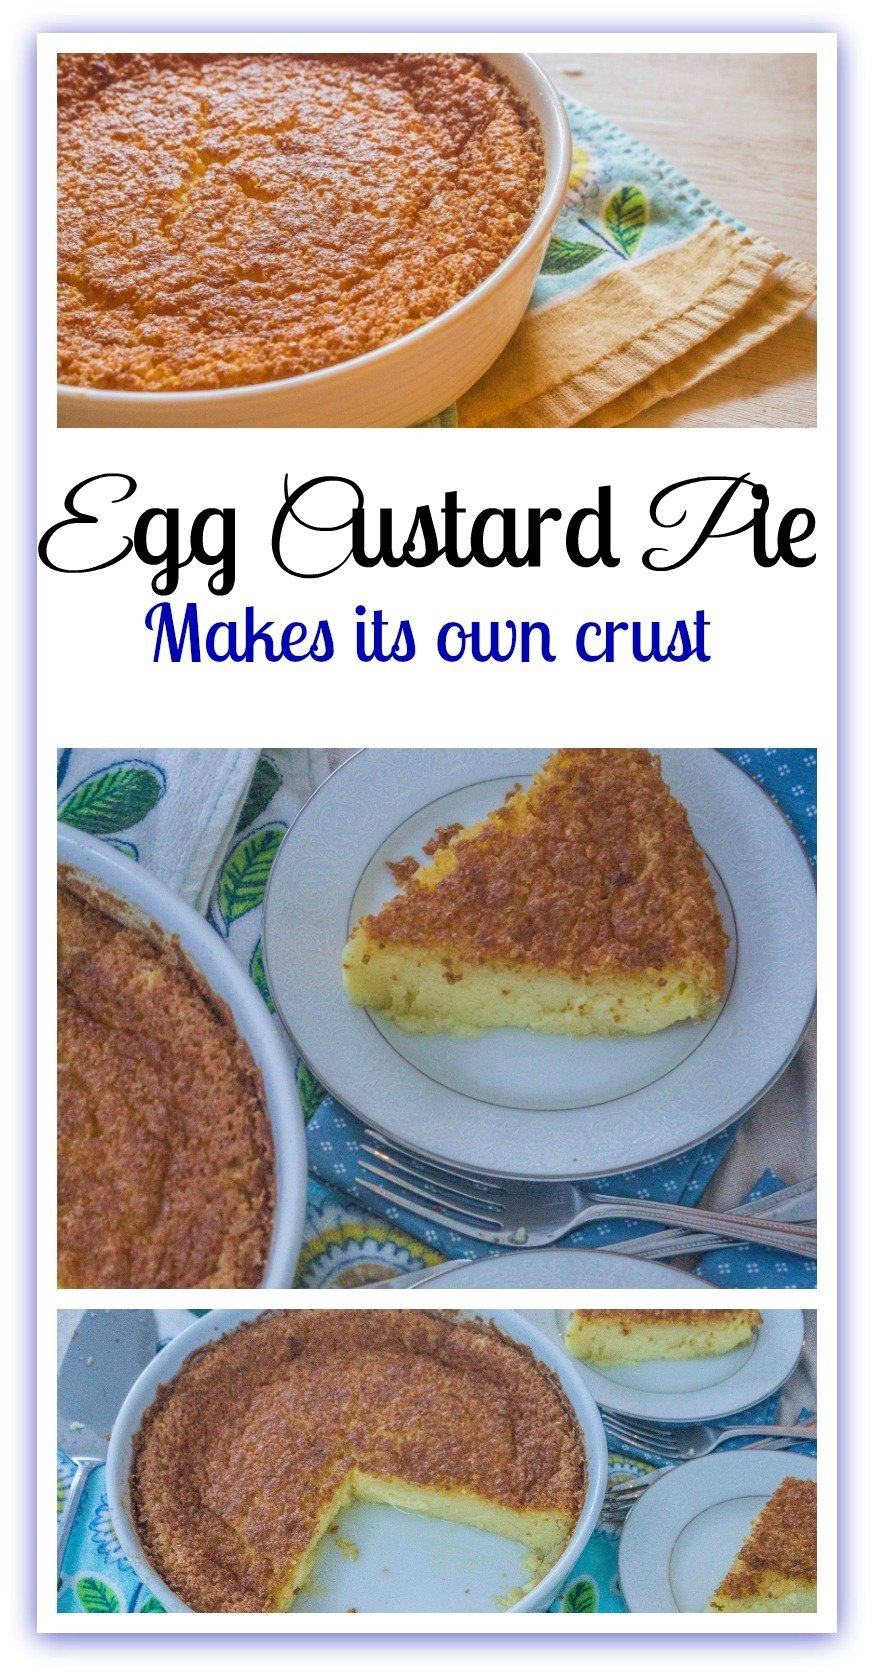 Egg Custard Pie only requires one mixing bowl and makes its own crust. #CustardPie #Desserts